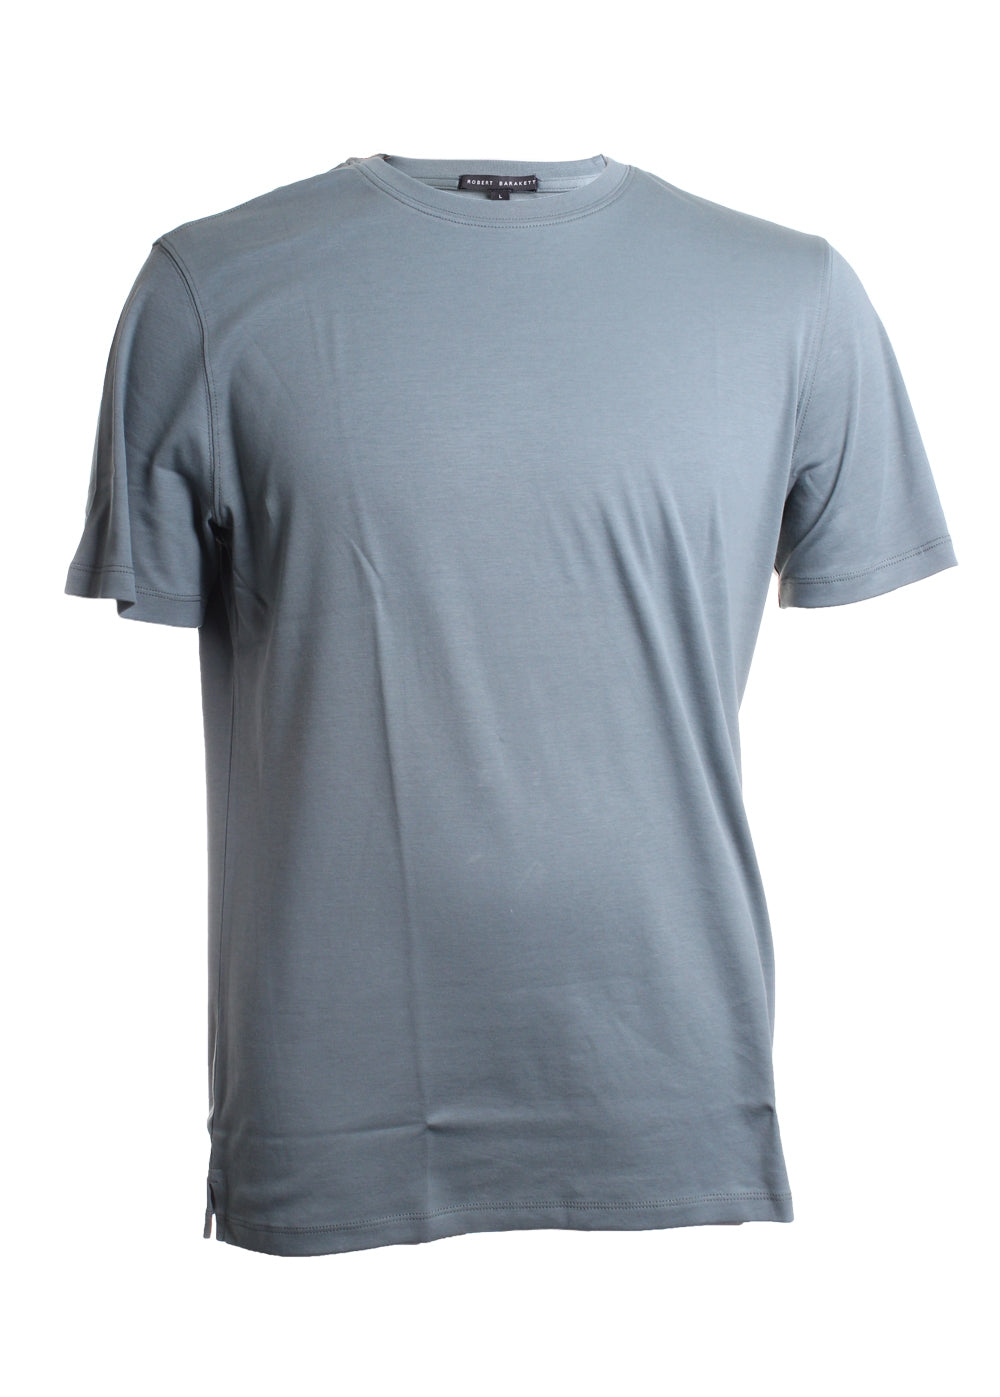 Short Sleeve Crew Neck Cotton Tee Shirt